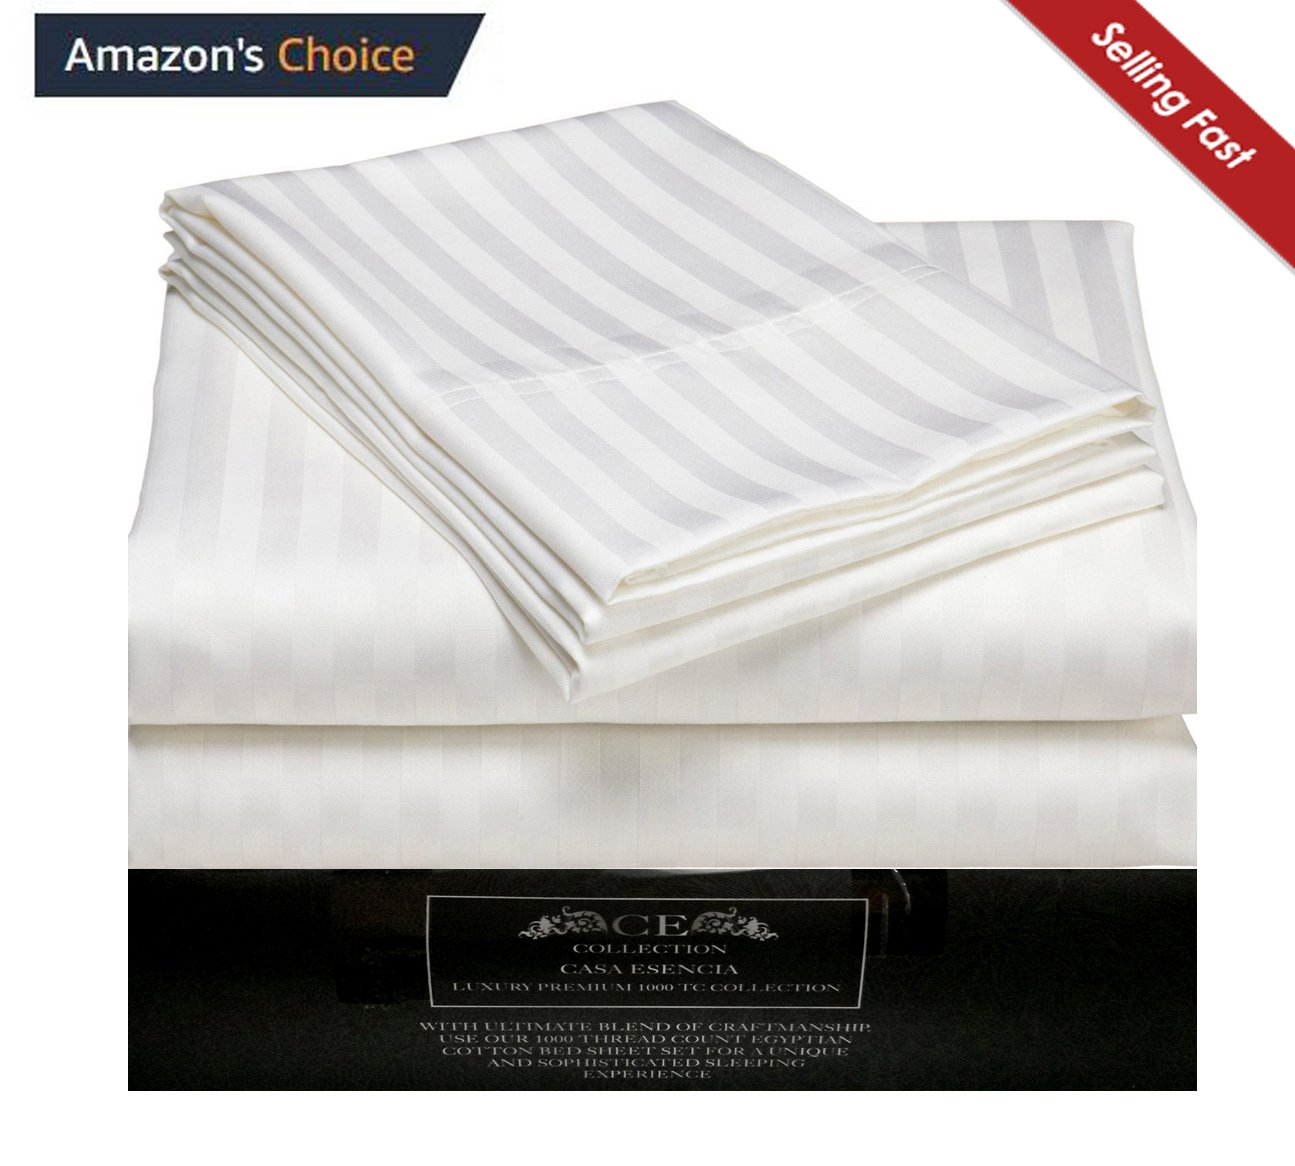 CE CASA ESENCIA King Sheet Set Luxury Soft 100% Egyptian Cotton Bed Sheets for King Size Mattress - White Sateen Striped 1000 Thread Count Deep Pocket 4 Piece Bedding Sets